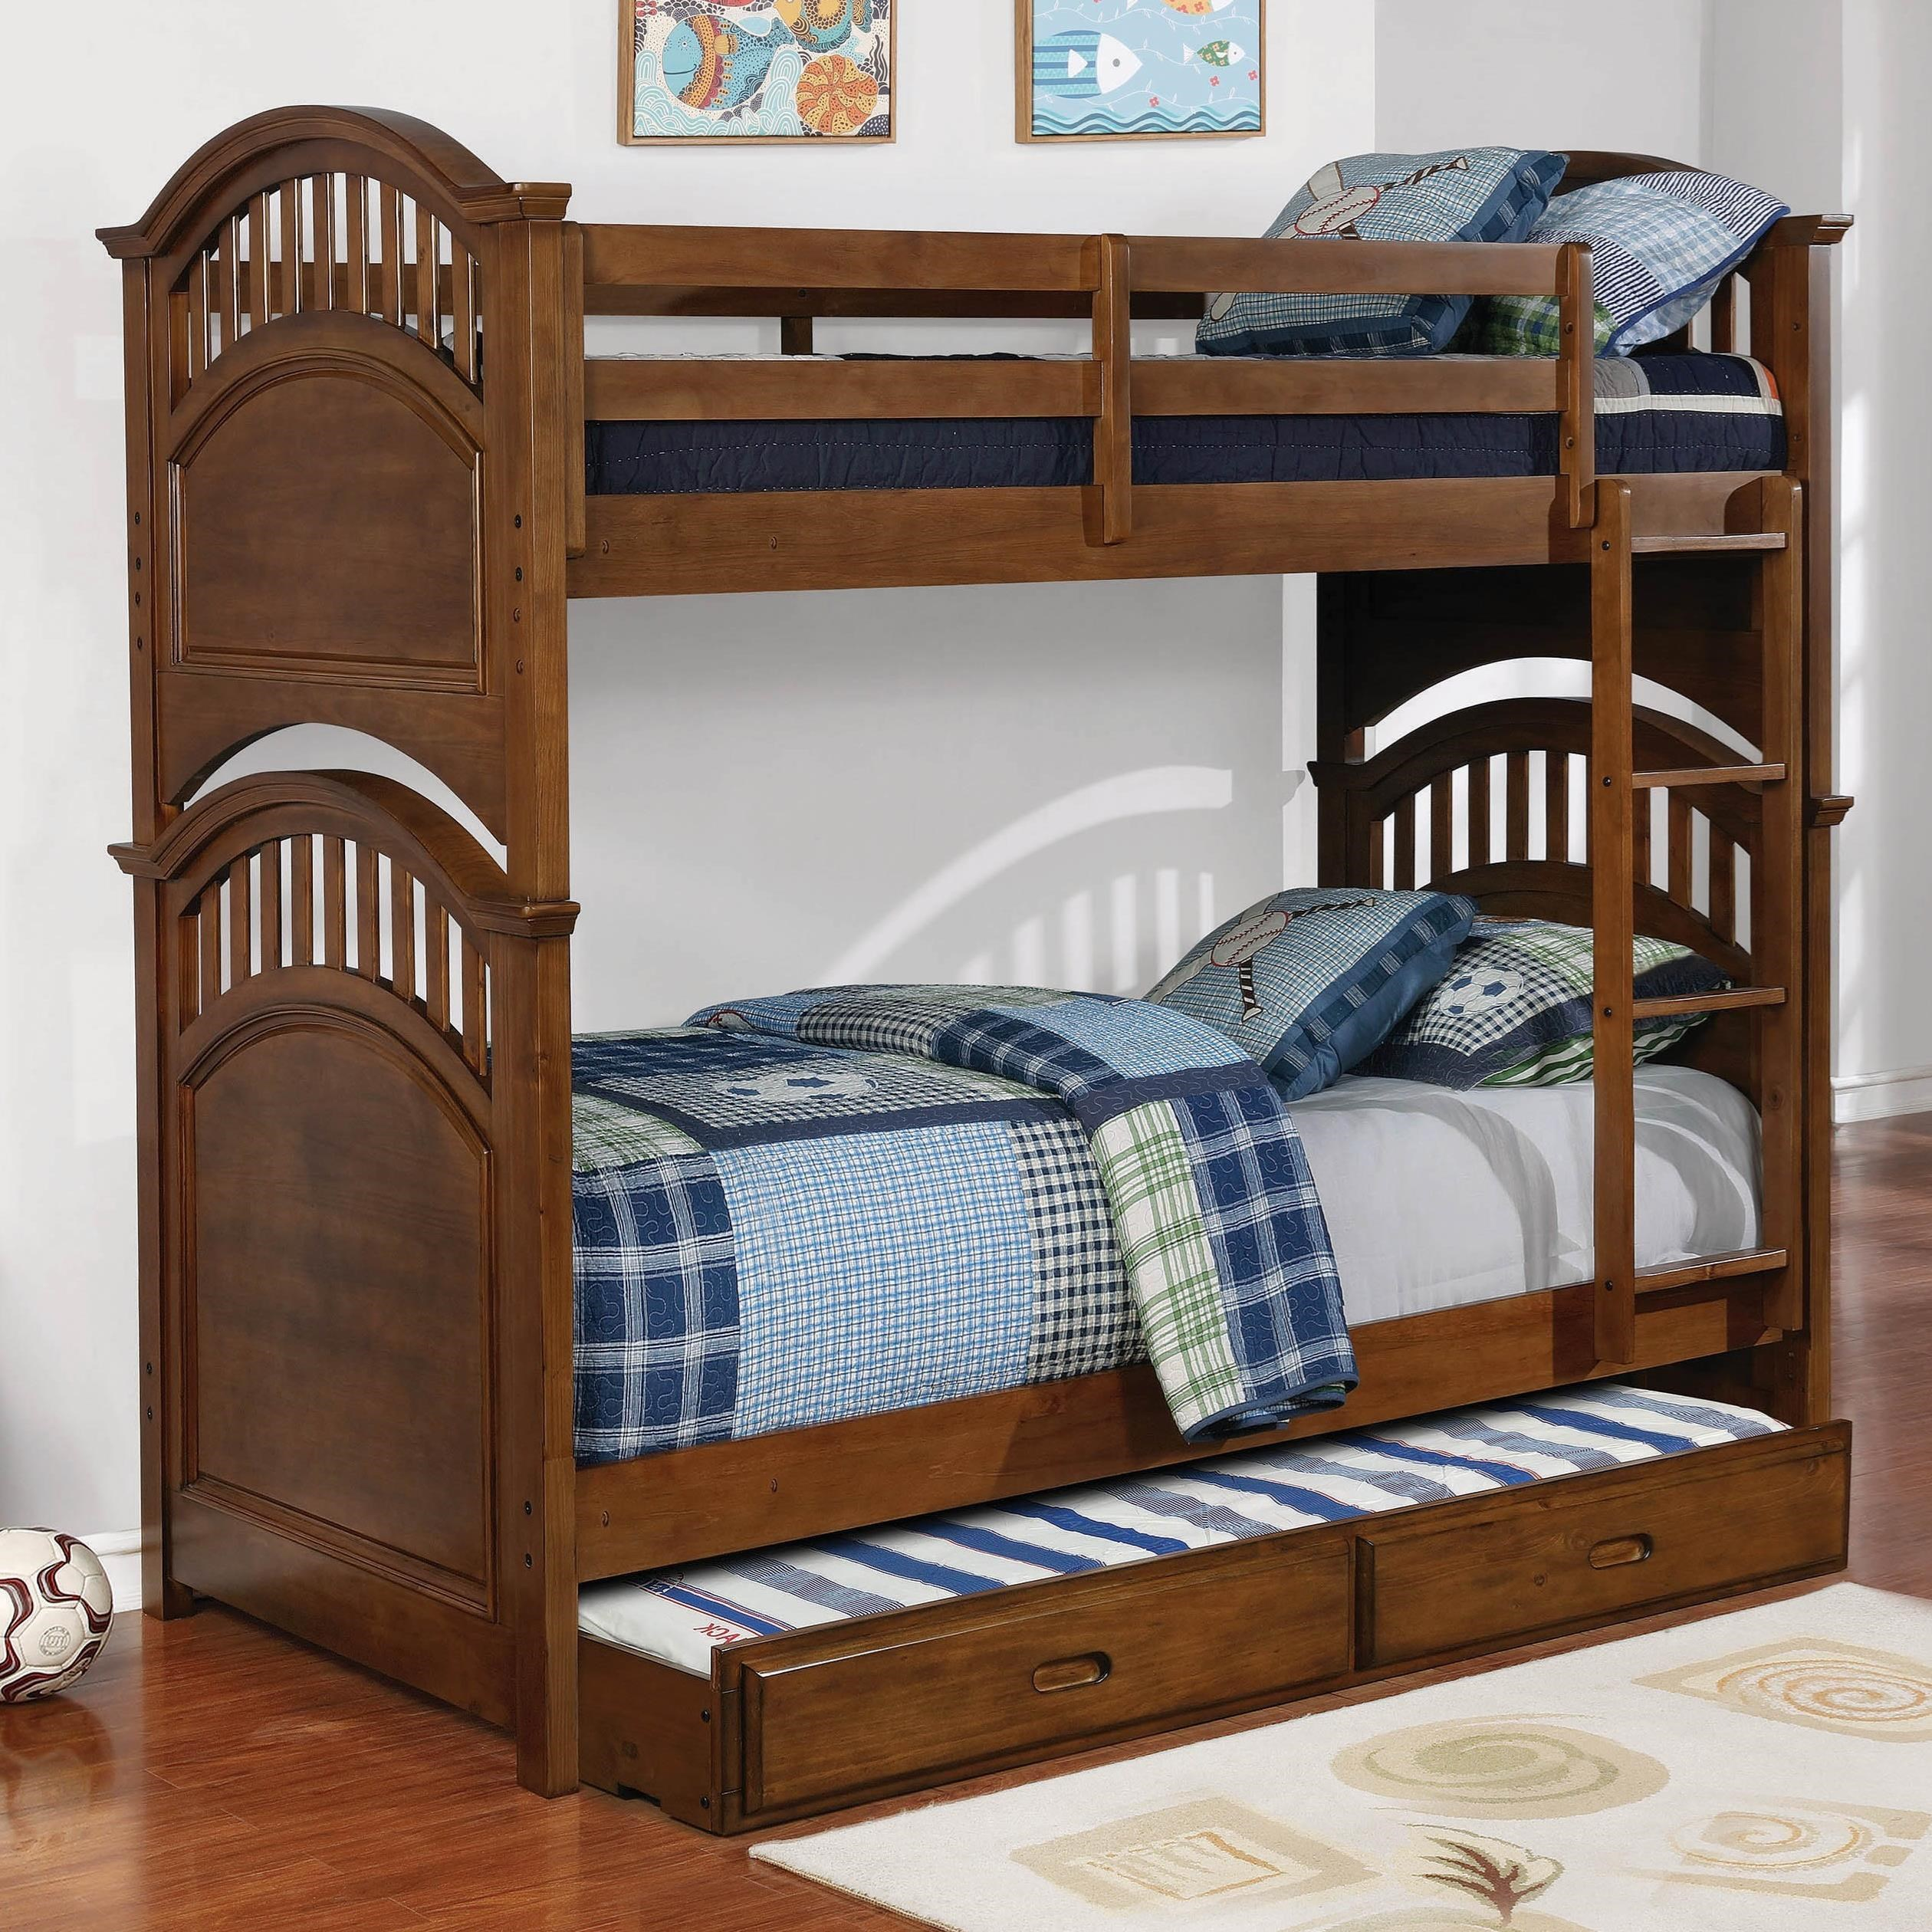 Halsted Twin over Twin Bunk Bed w/ Storage Trundle by Coaster at Value City Furniture